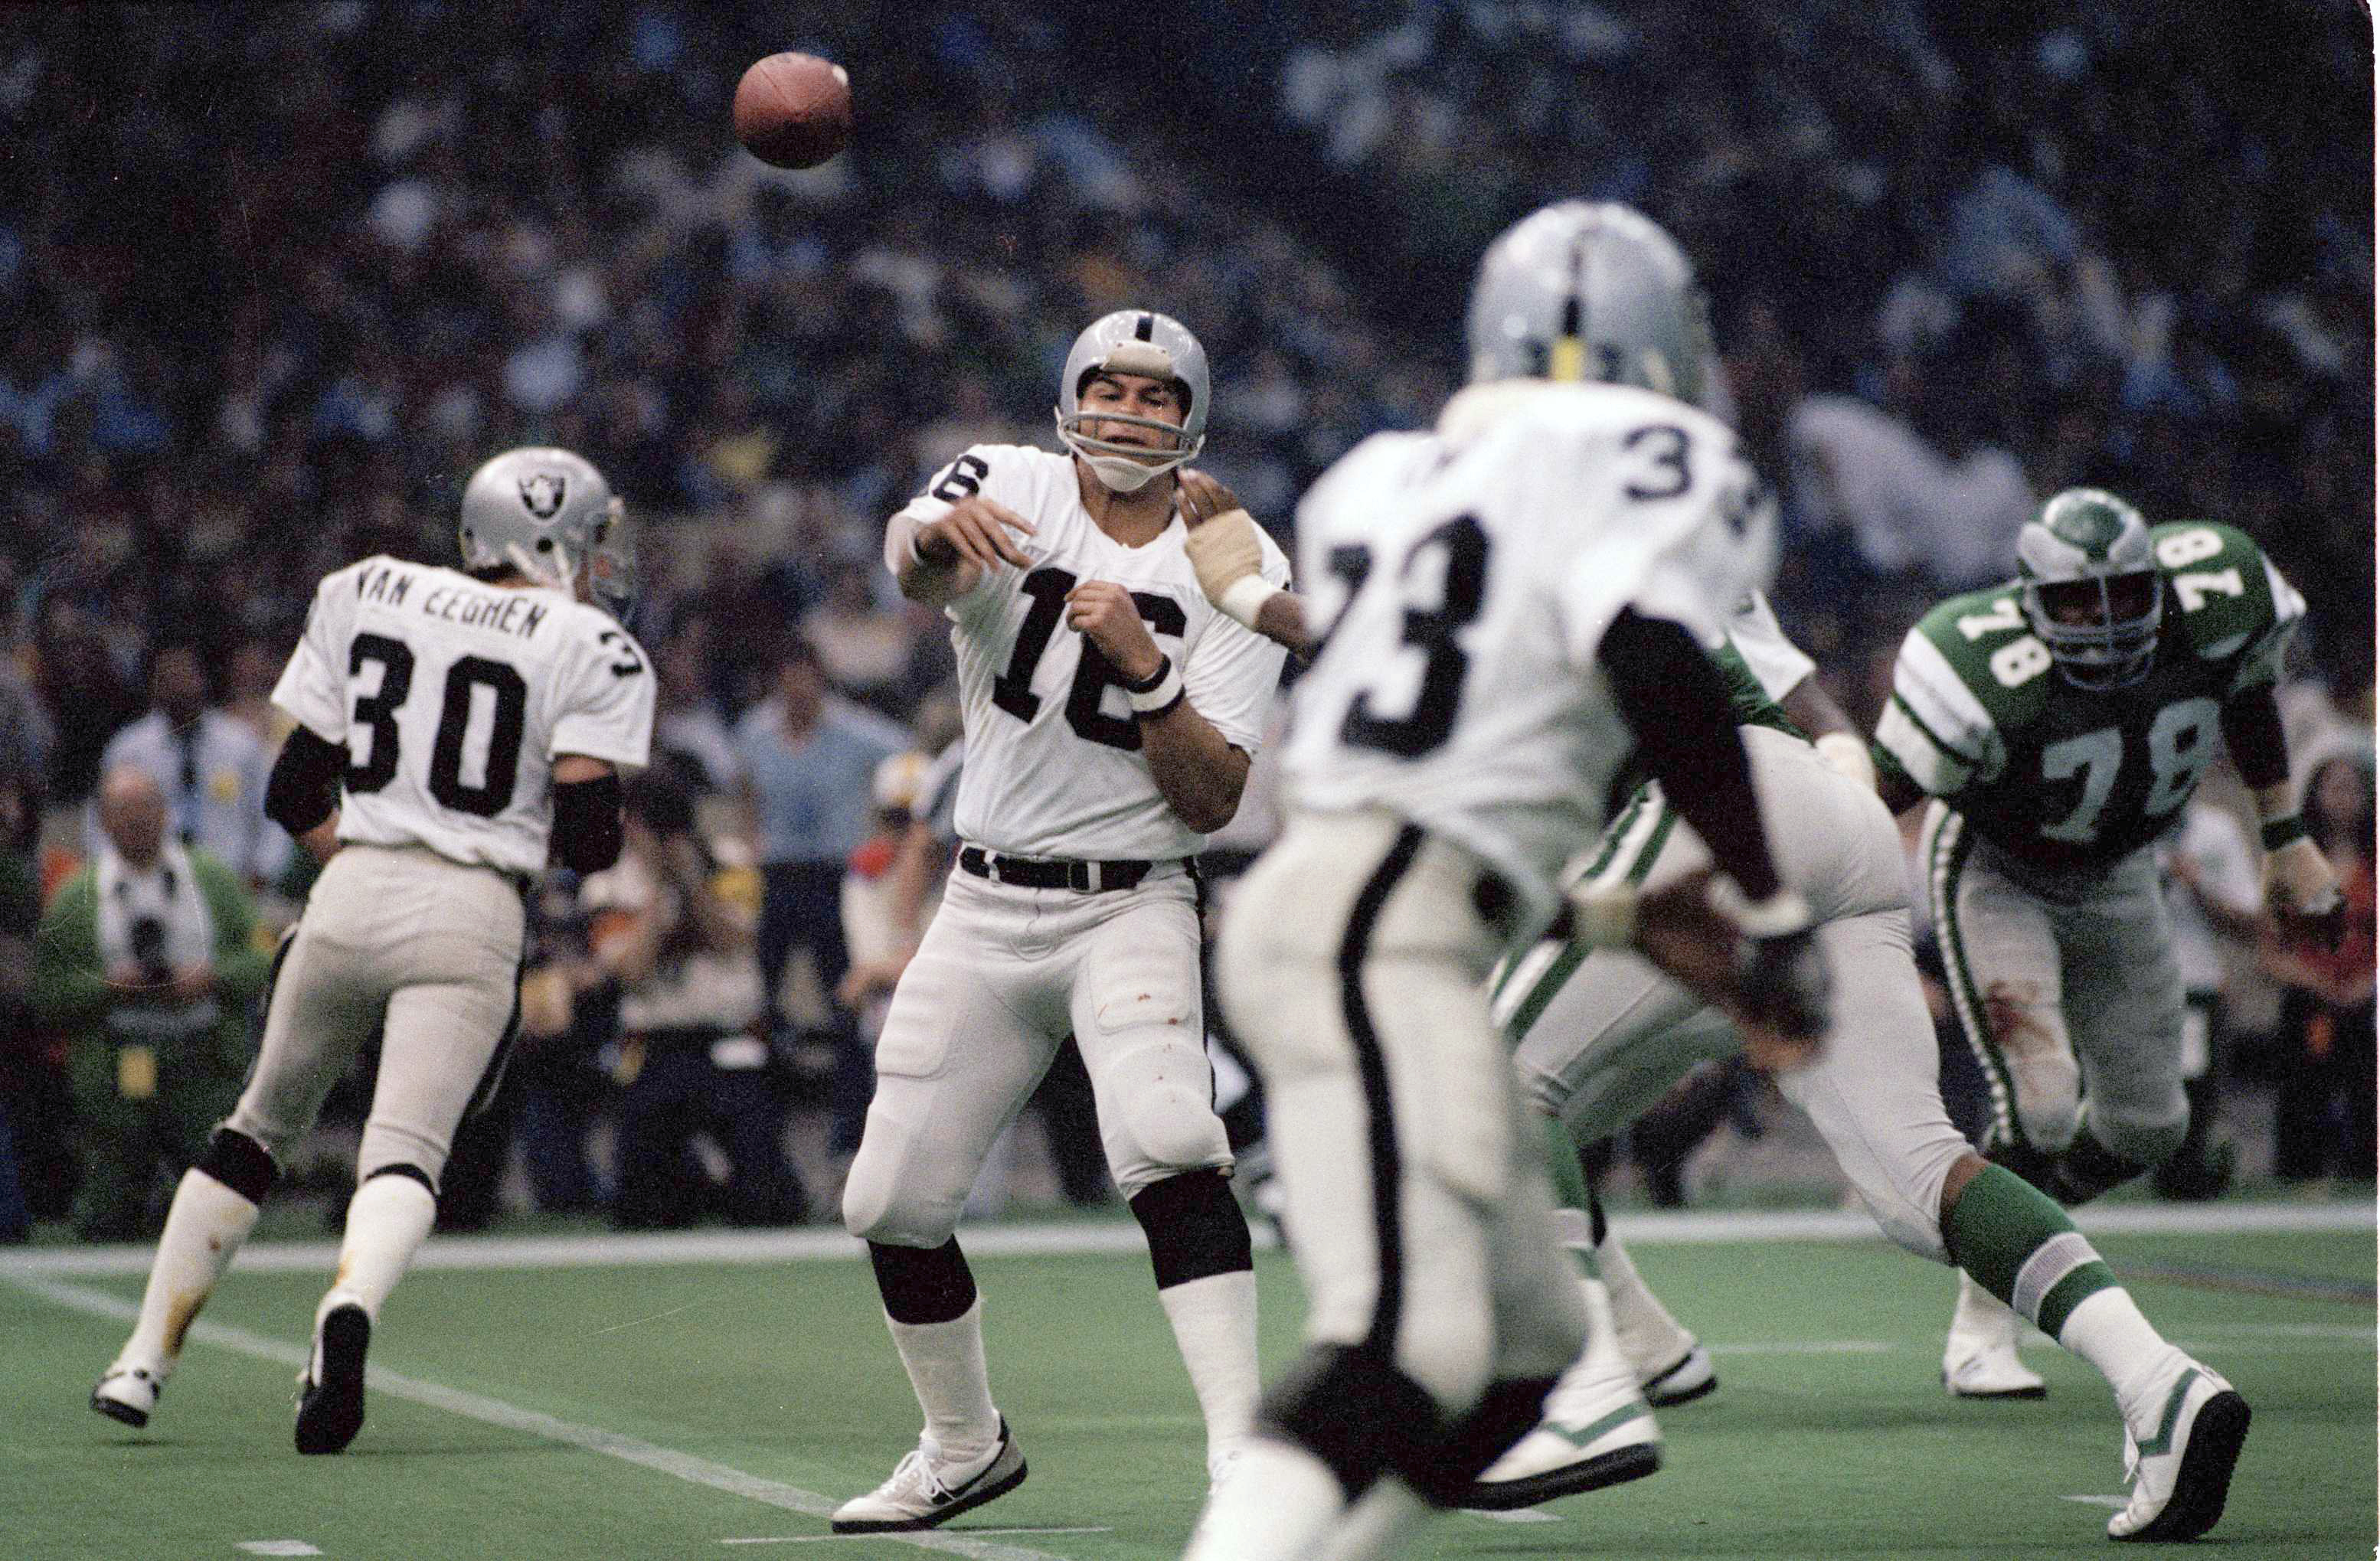 Jim Plunkett (16) led the Raiders to two Super Bowls, including this one over the Eagles following the 1980 season. Plunkett was the game´s MVP. (AP Photo/File)